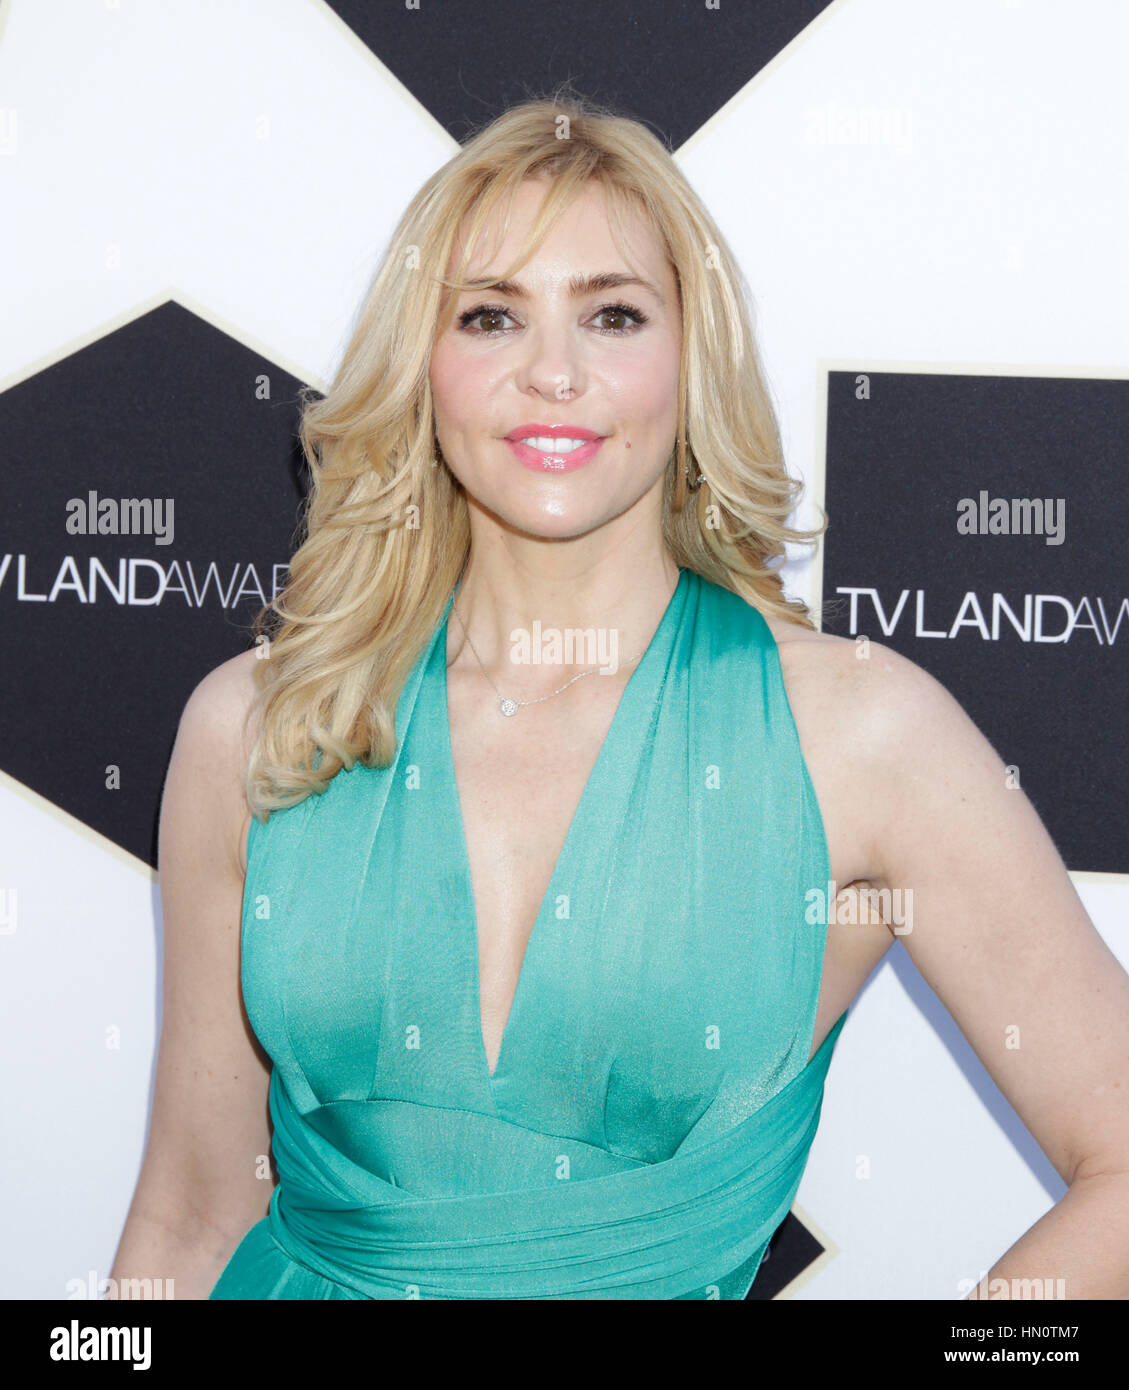 Olivia d'Abo arrives at the TV Land Awards on April 11, 2015 in Beverly Hills, California. Photo by Francis - Stock Image